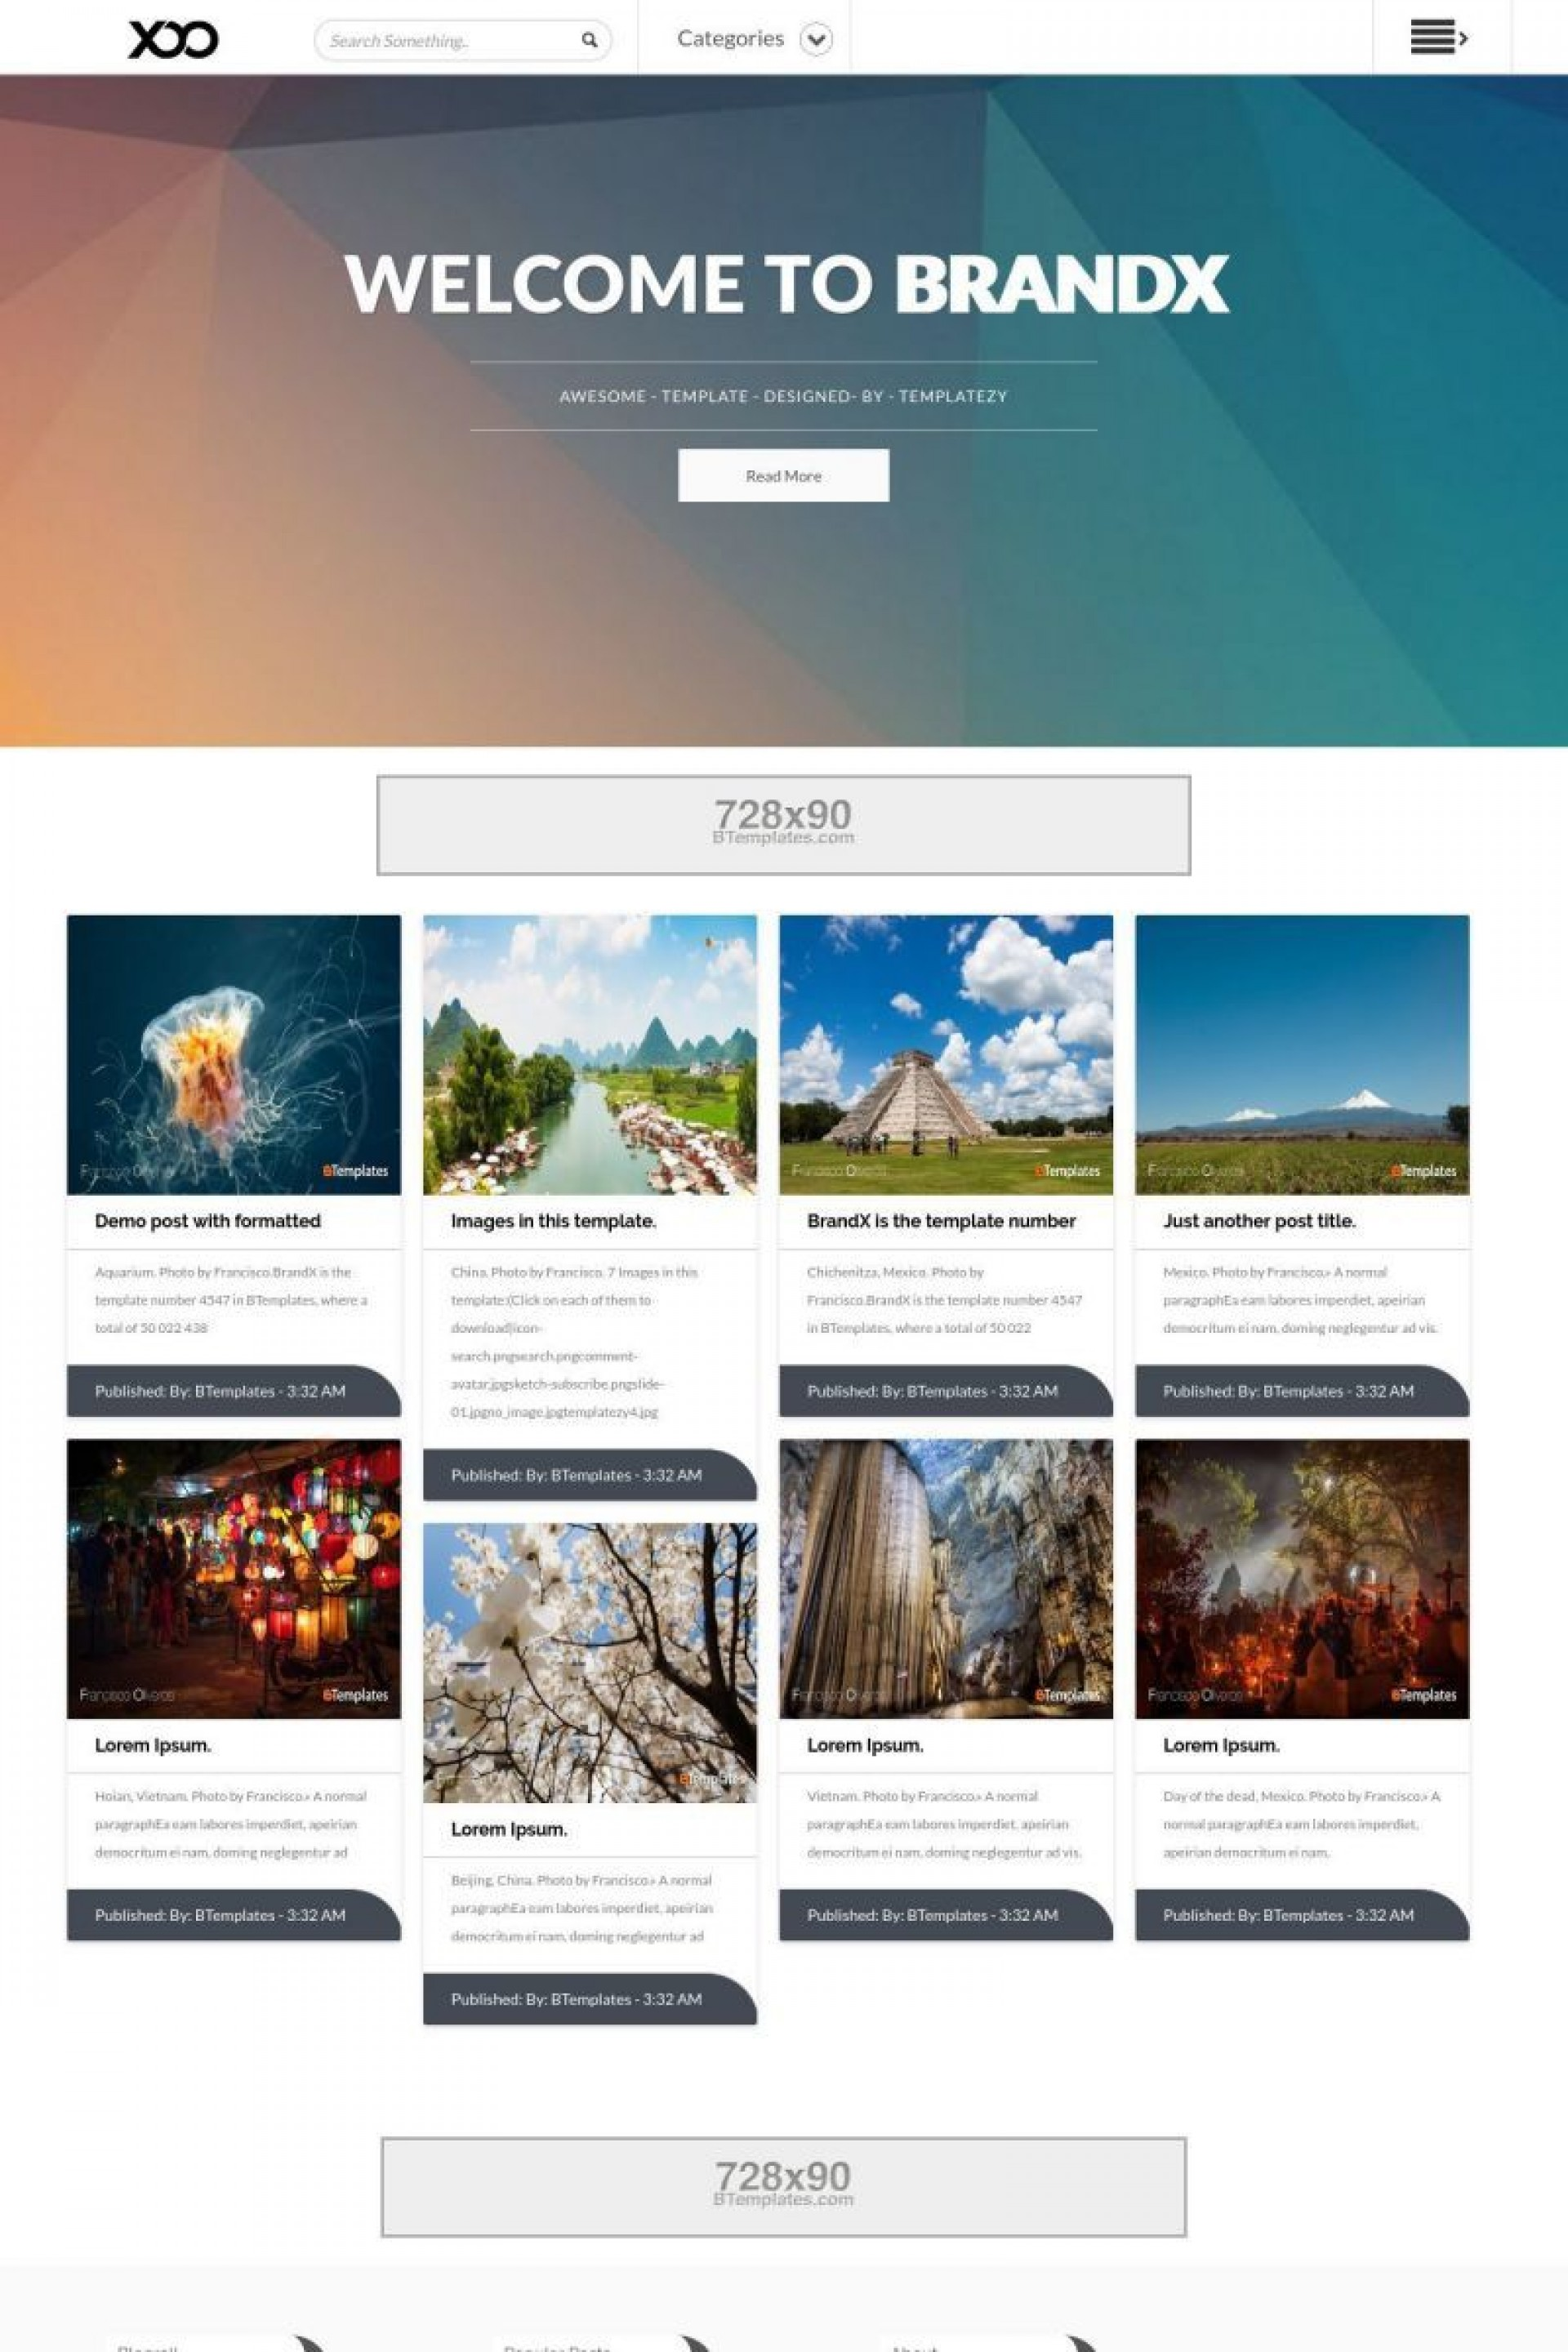 001 Magnificent Free Responsive Blogger Template With Slider Sample 1920